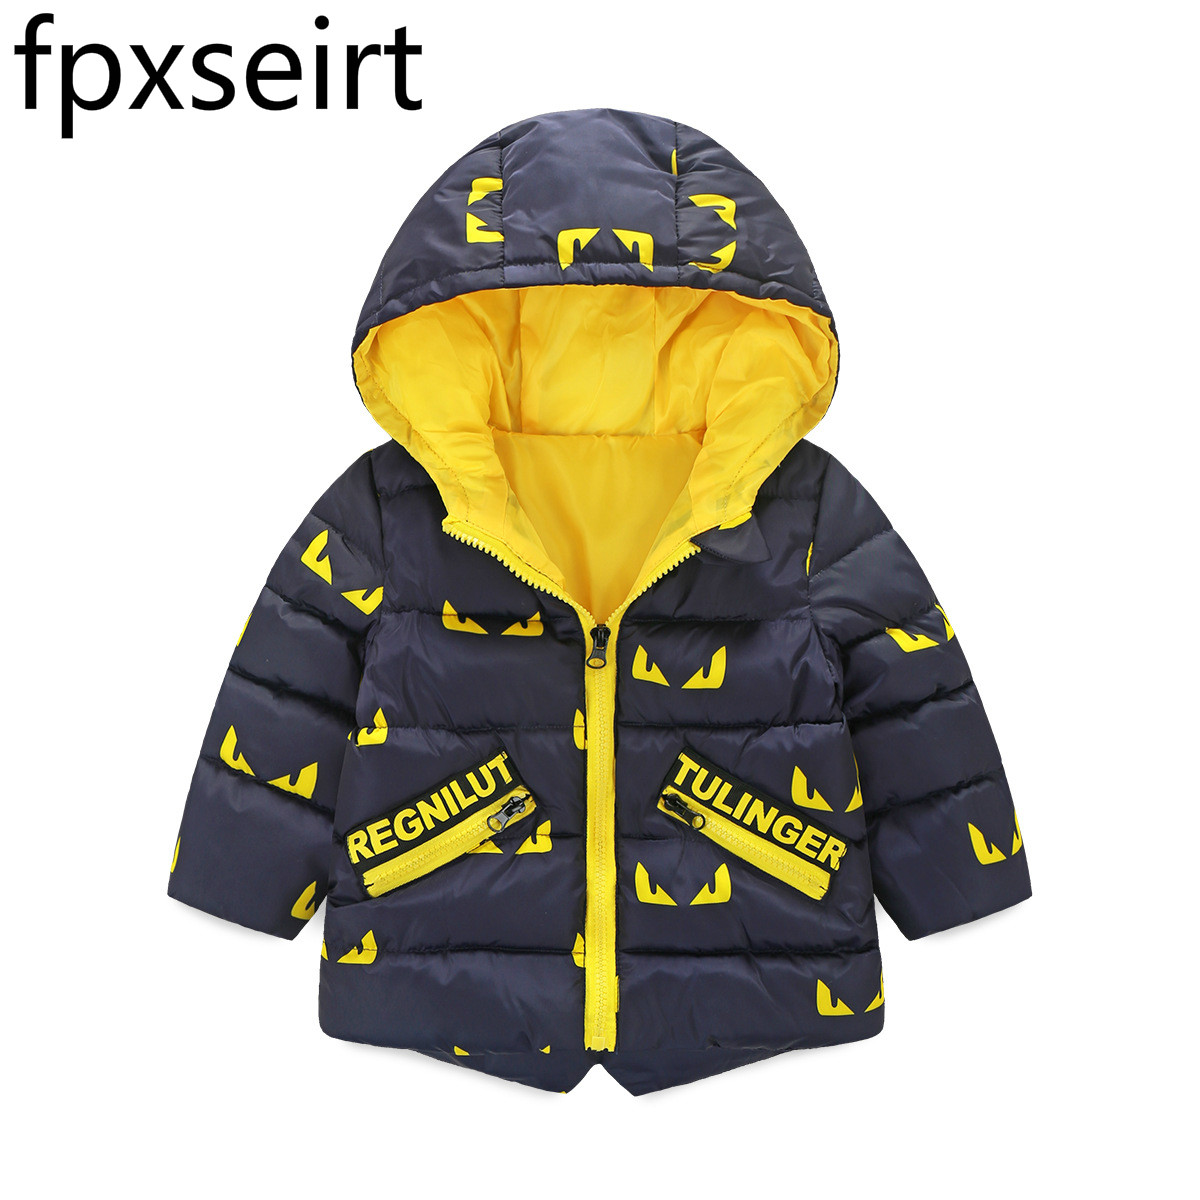 Winter Kids Boy Jacket Cotton Outerwear Baby Boy Padded Jacket Children Winter-Clothing Hooded Kids Coat Warm Hooded Jacket